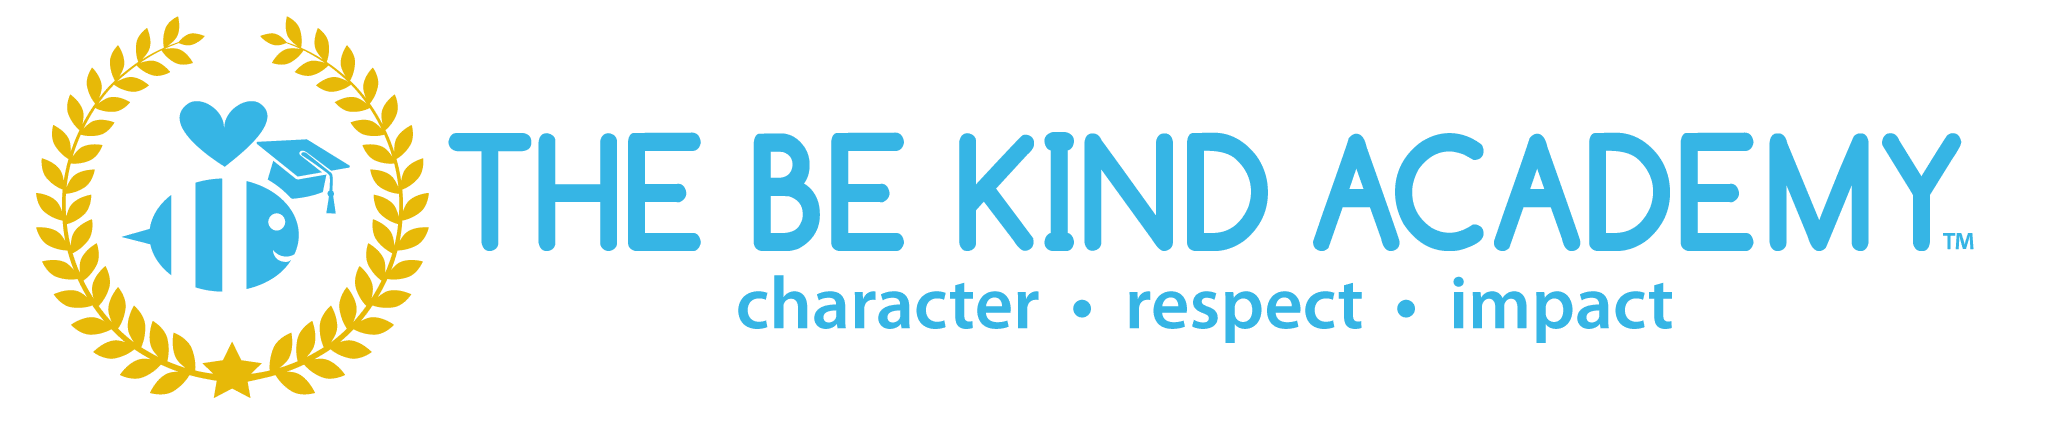 The BE KIND Academy